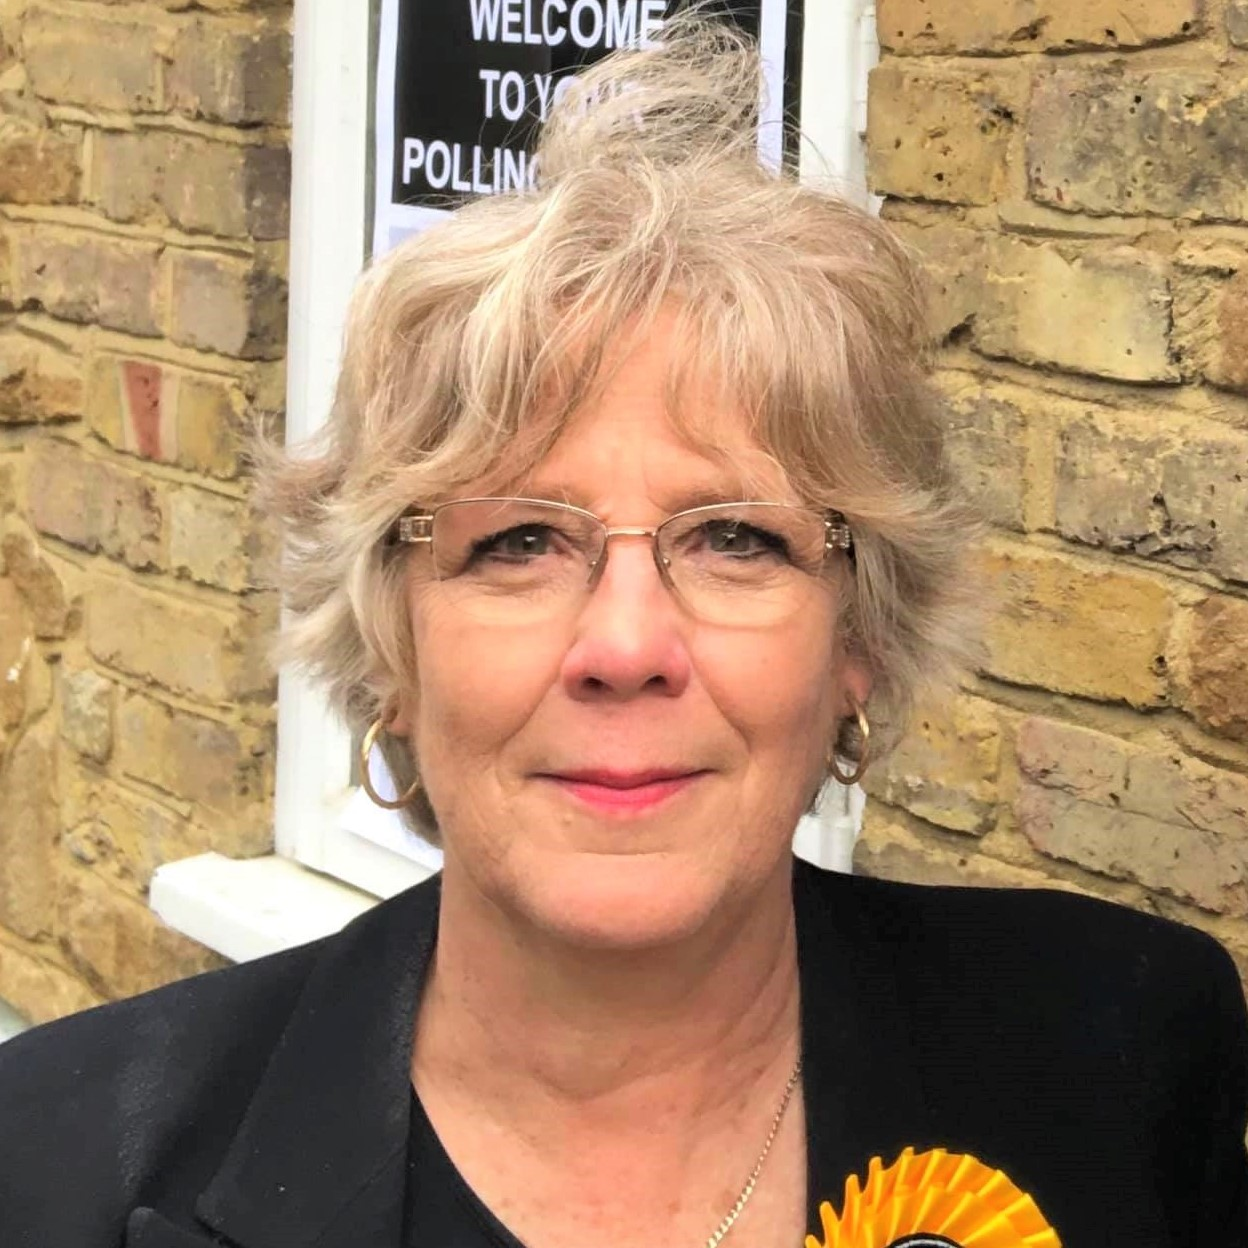 Cllr Penny Rivers